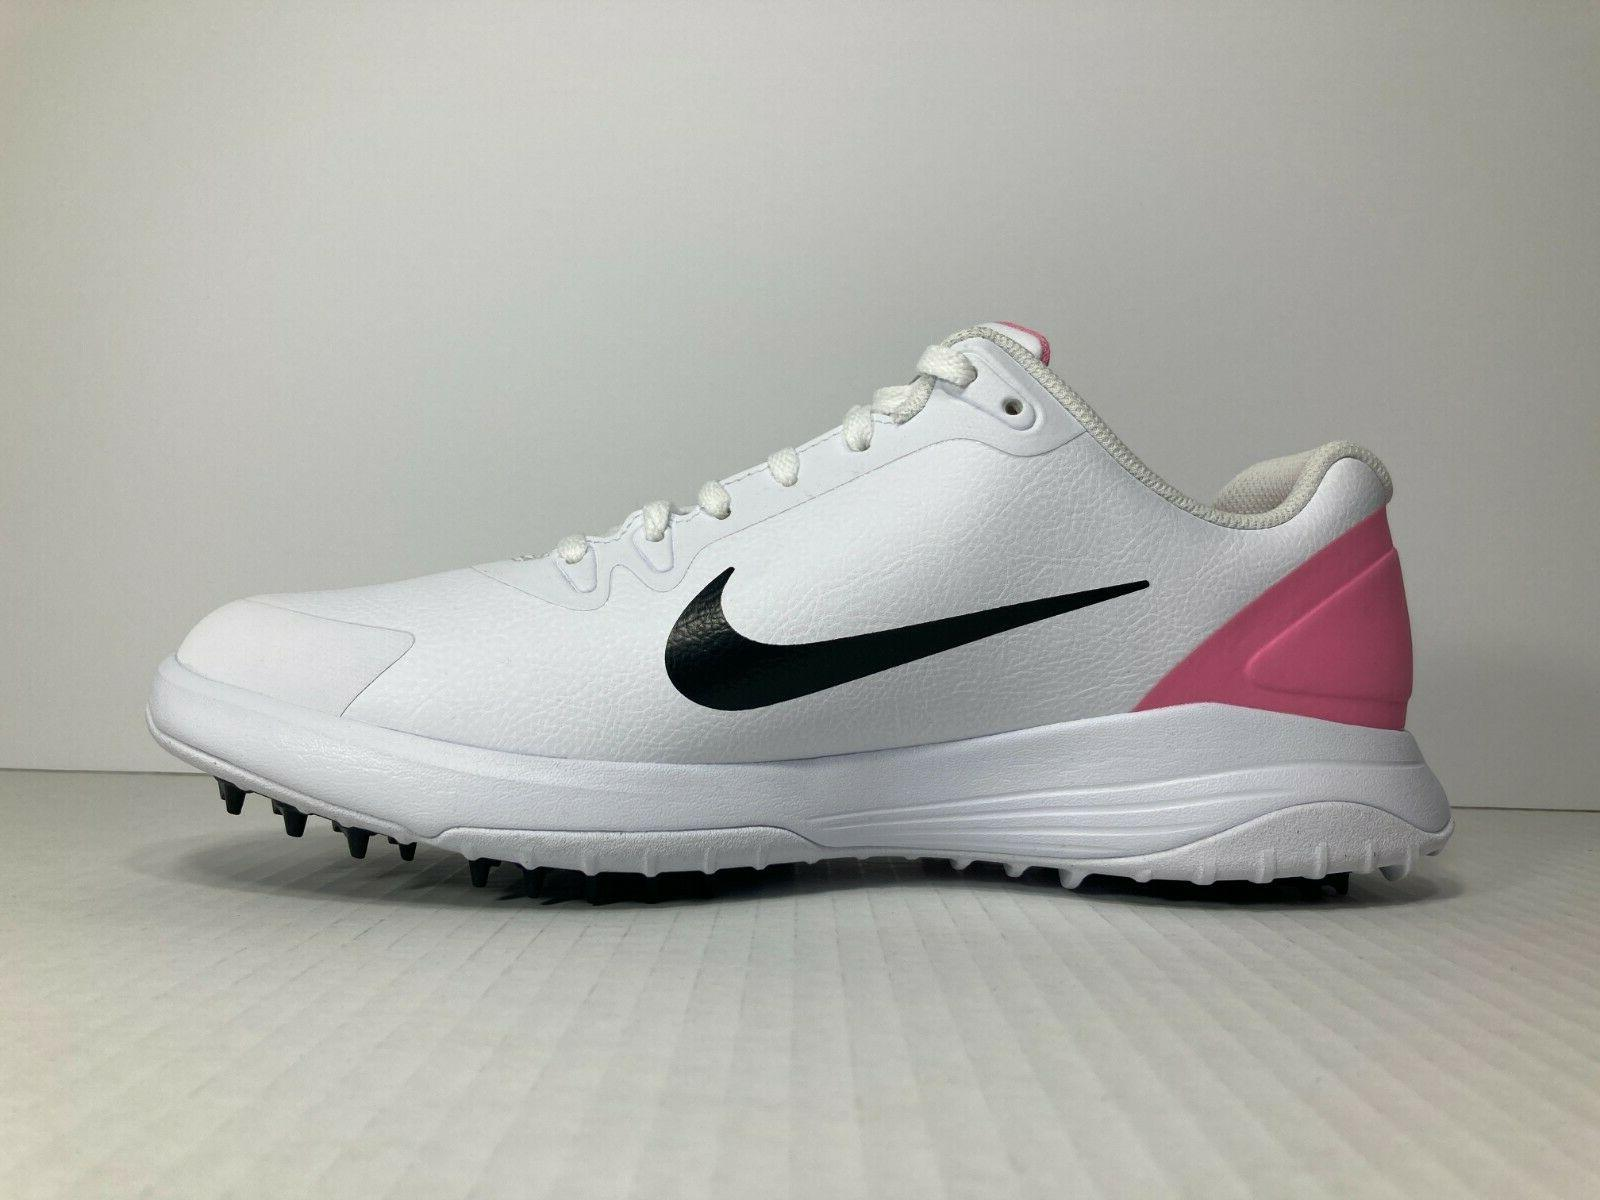 NIKE INFINITY Mens Golfing Shoes Cleats Spikes - -